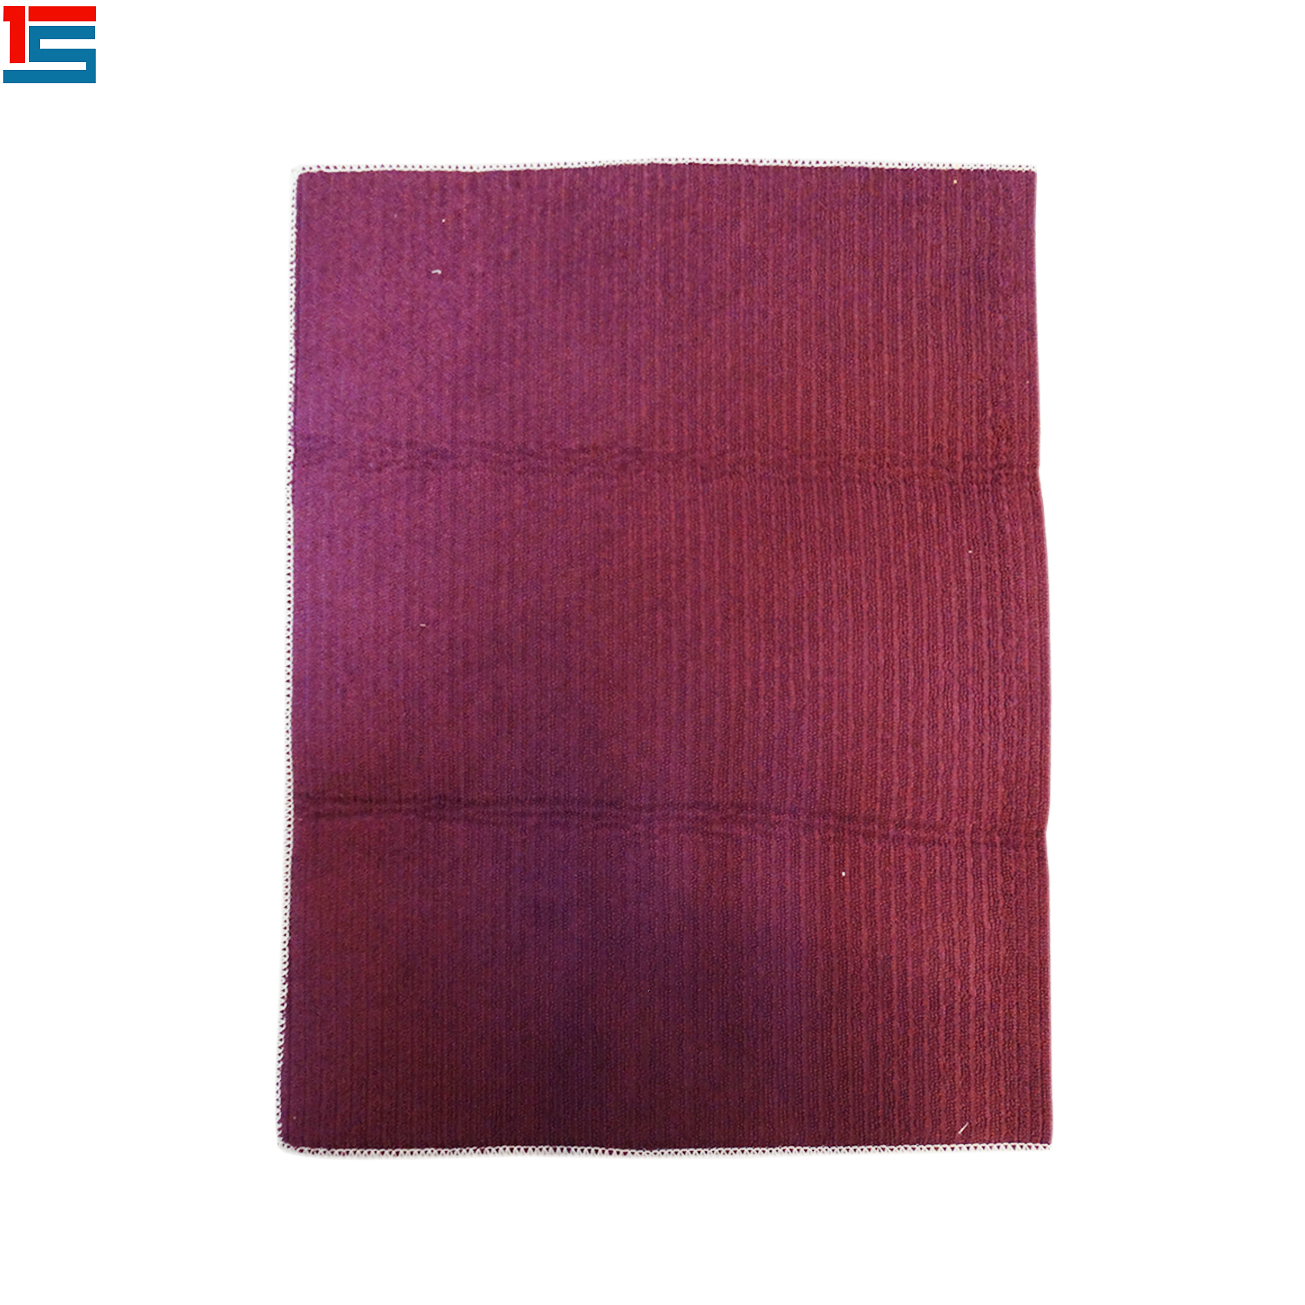 80% polyester 20% polyamide Super absorbent blue microfiber cleaning cloth